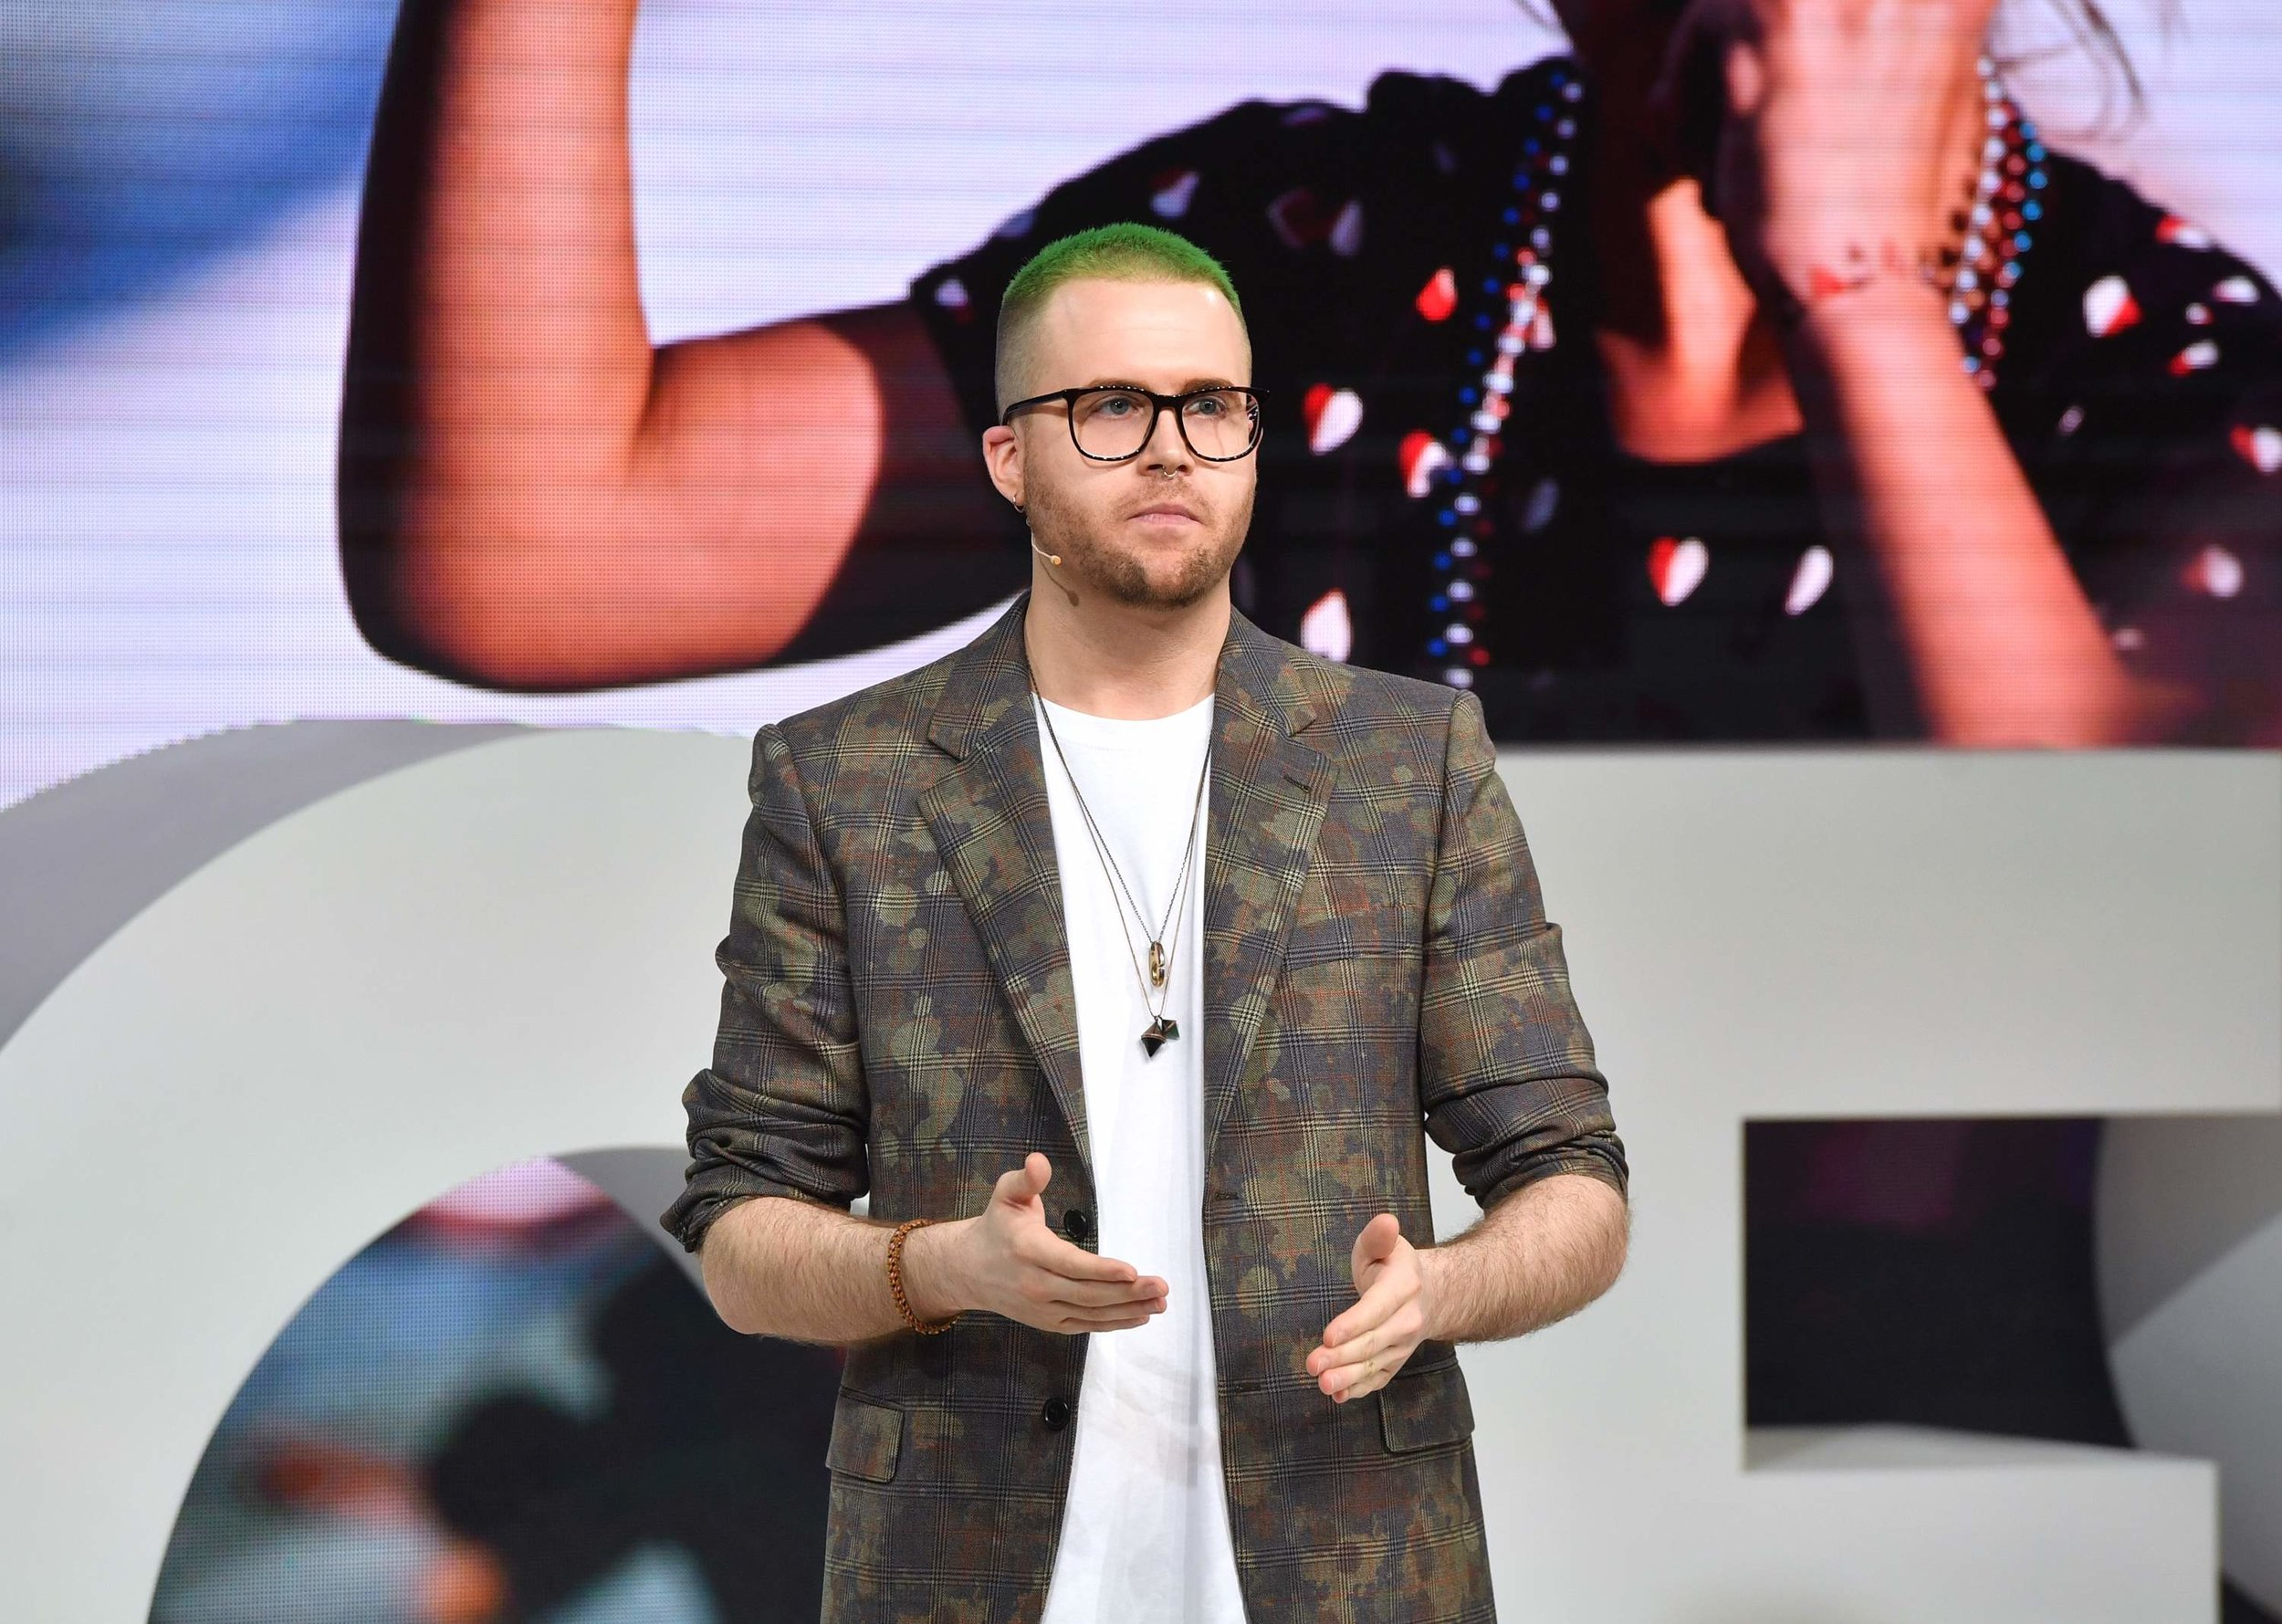 Whistleblower Christopher Wylie speaking at The Business of Fashion's VOICES in 2018. (Photo: heavy.com)